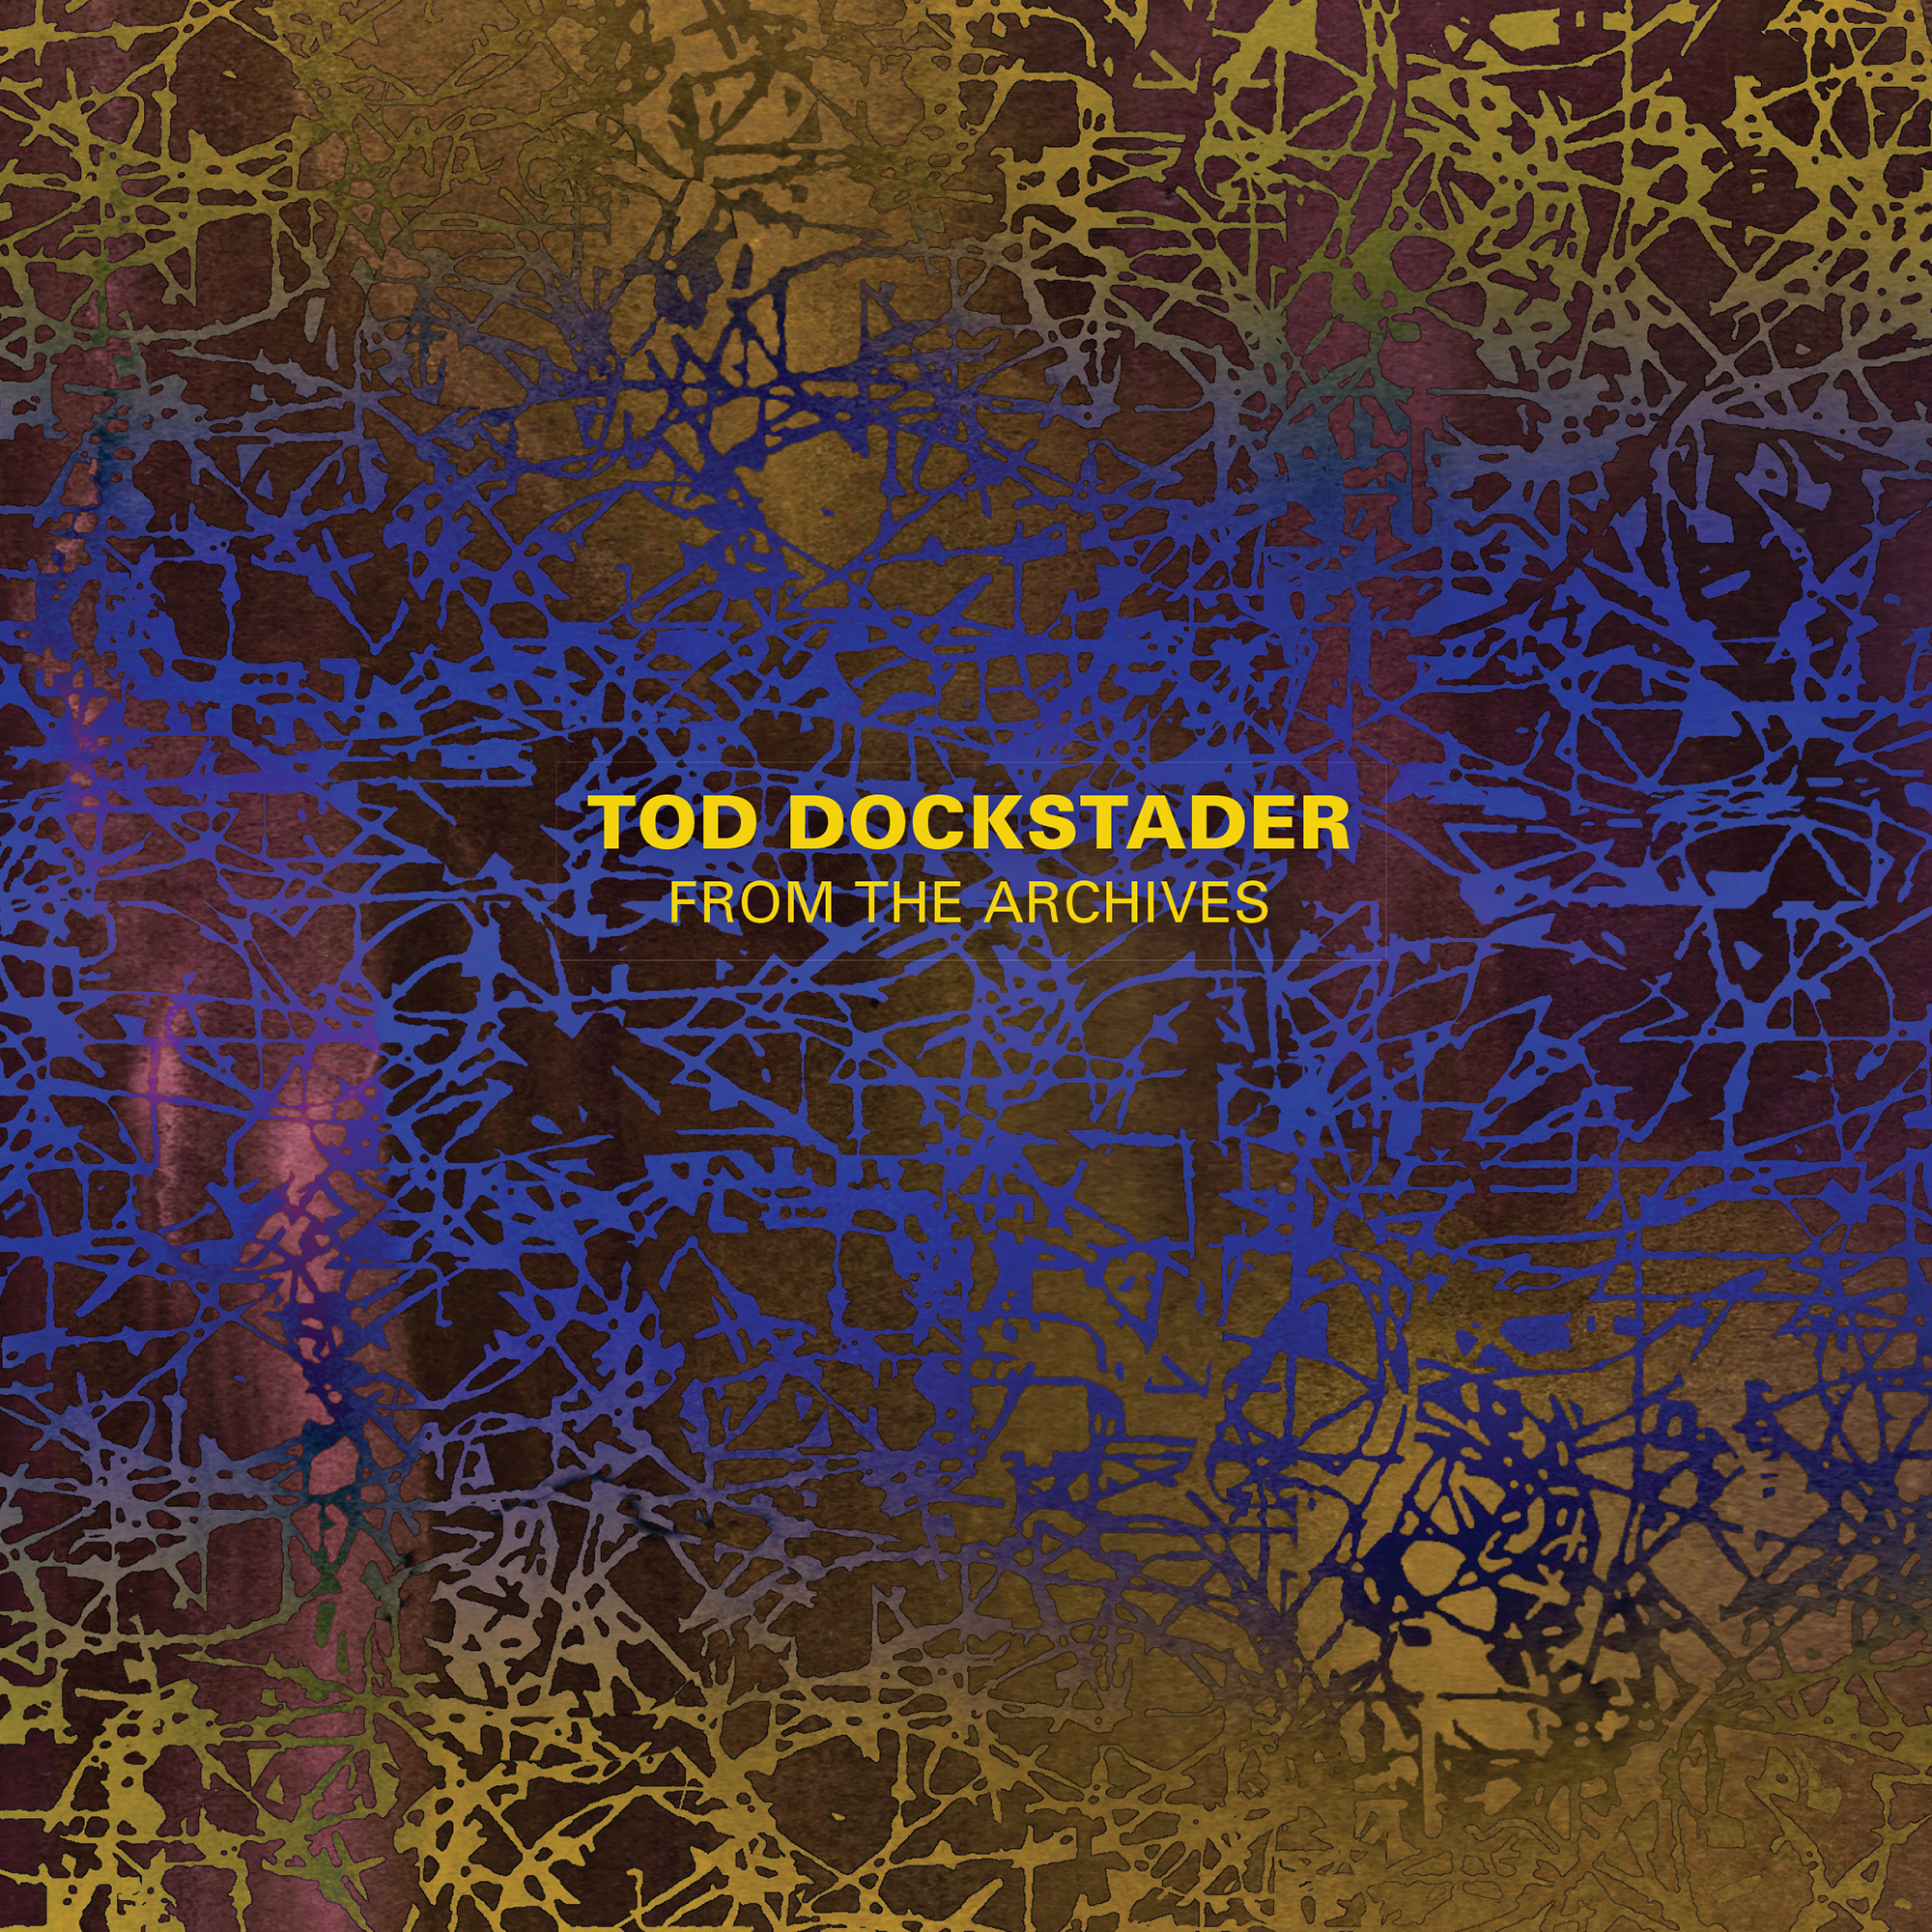 The cover for the latest Starkland CD release, Tod Dockstader From The Archives.